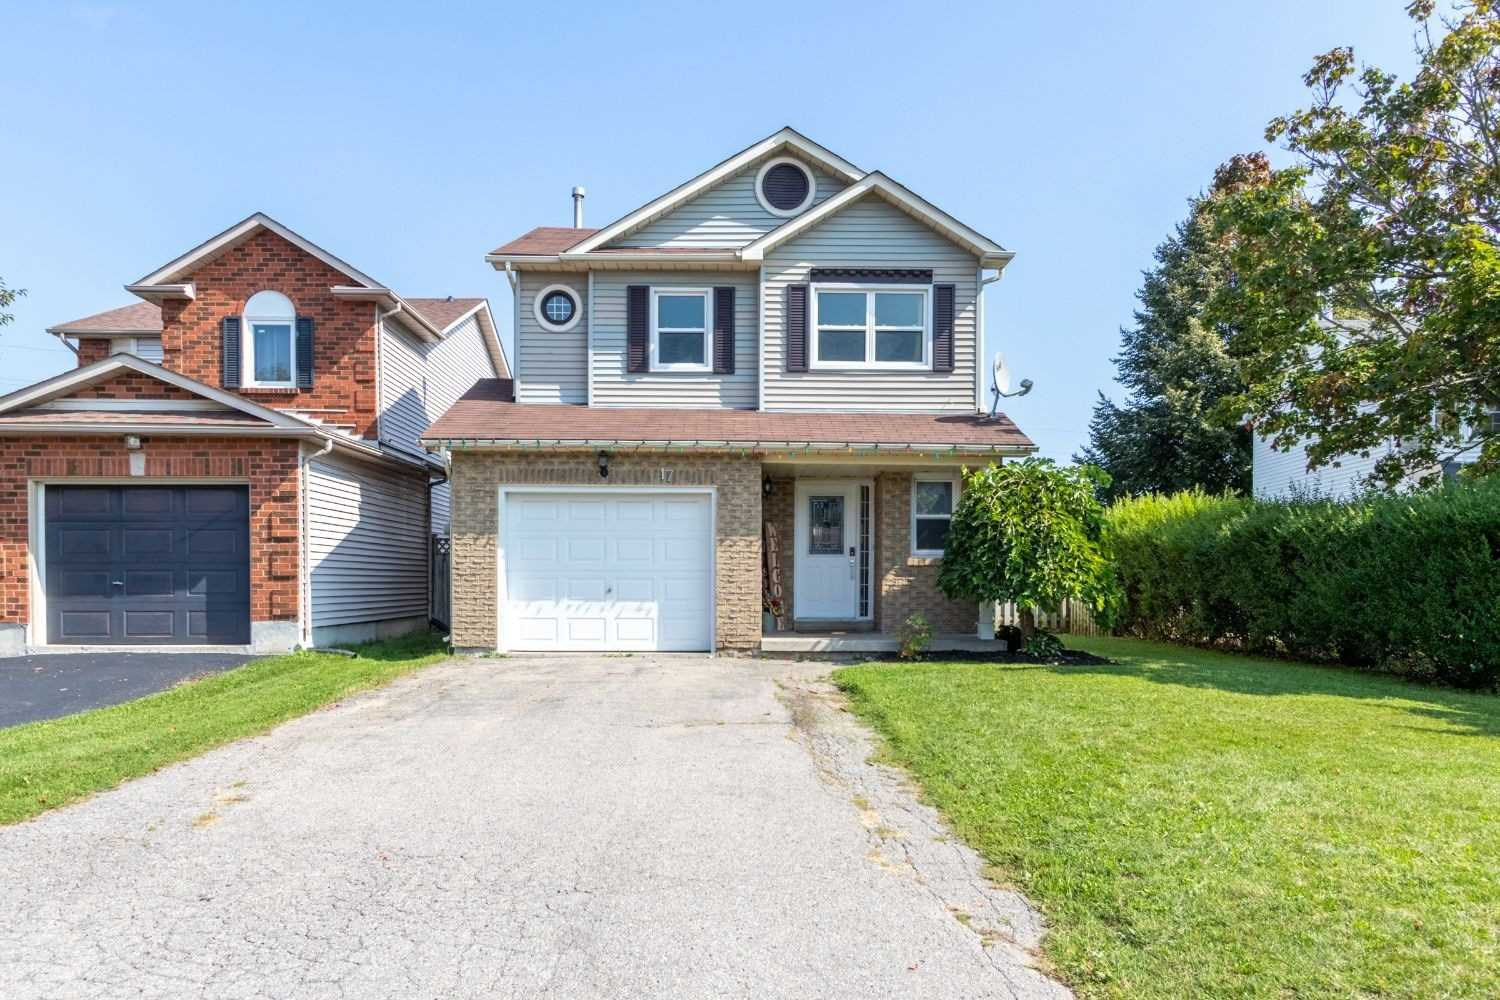 Detached house For Sale In Port Hope - 17 Sanders Dr, Port Hope, Ontario, Canada L1A4E9 , 3 Bedrooms Bedrooms, ,2 BathroomsBathrooms,Detached,For Sale,Sanders